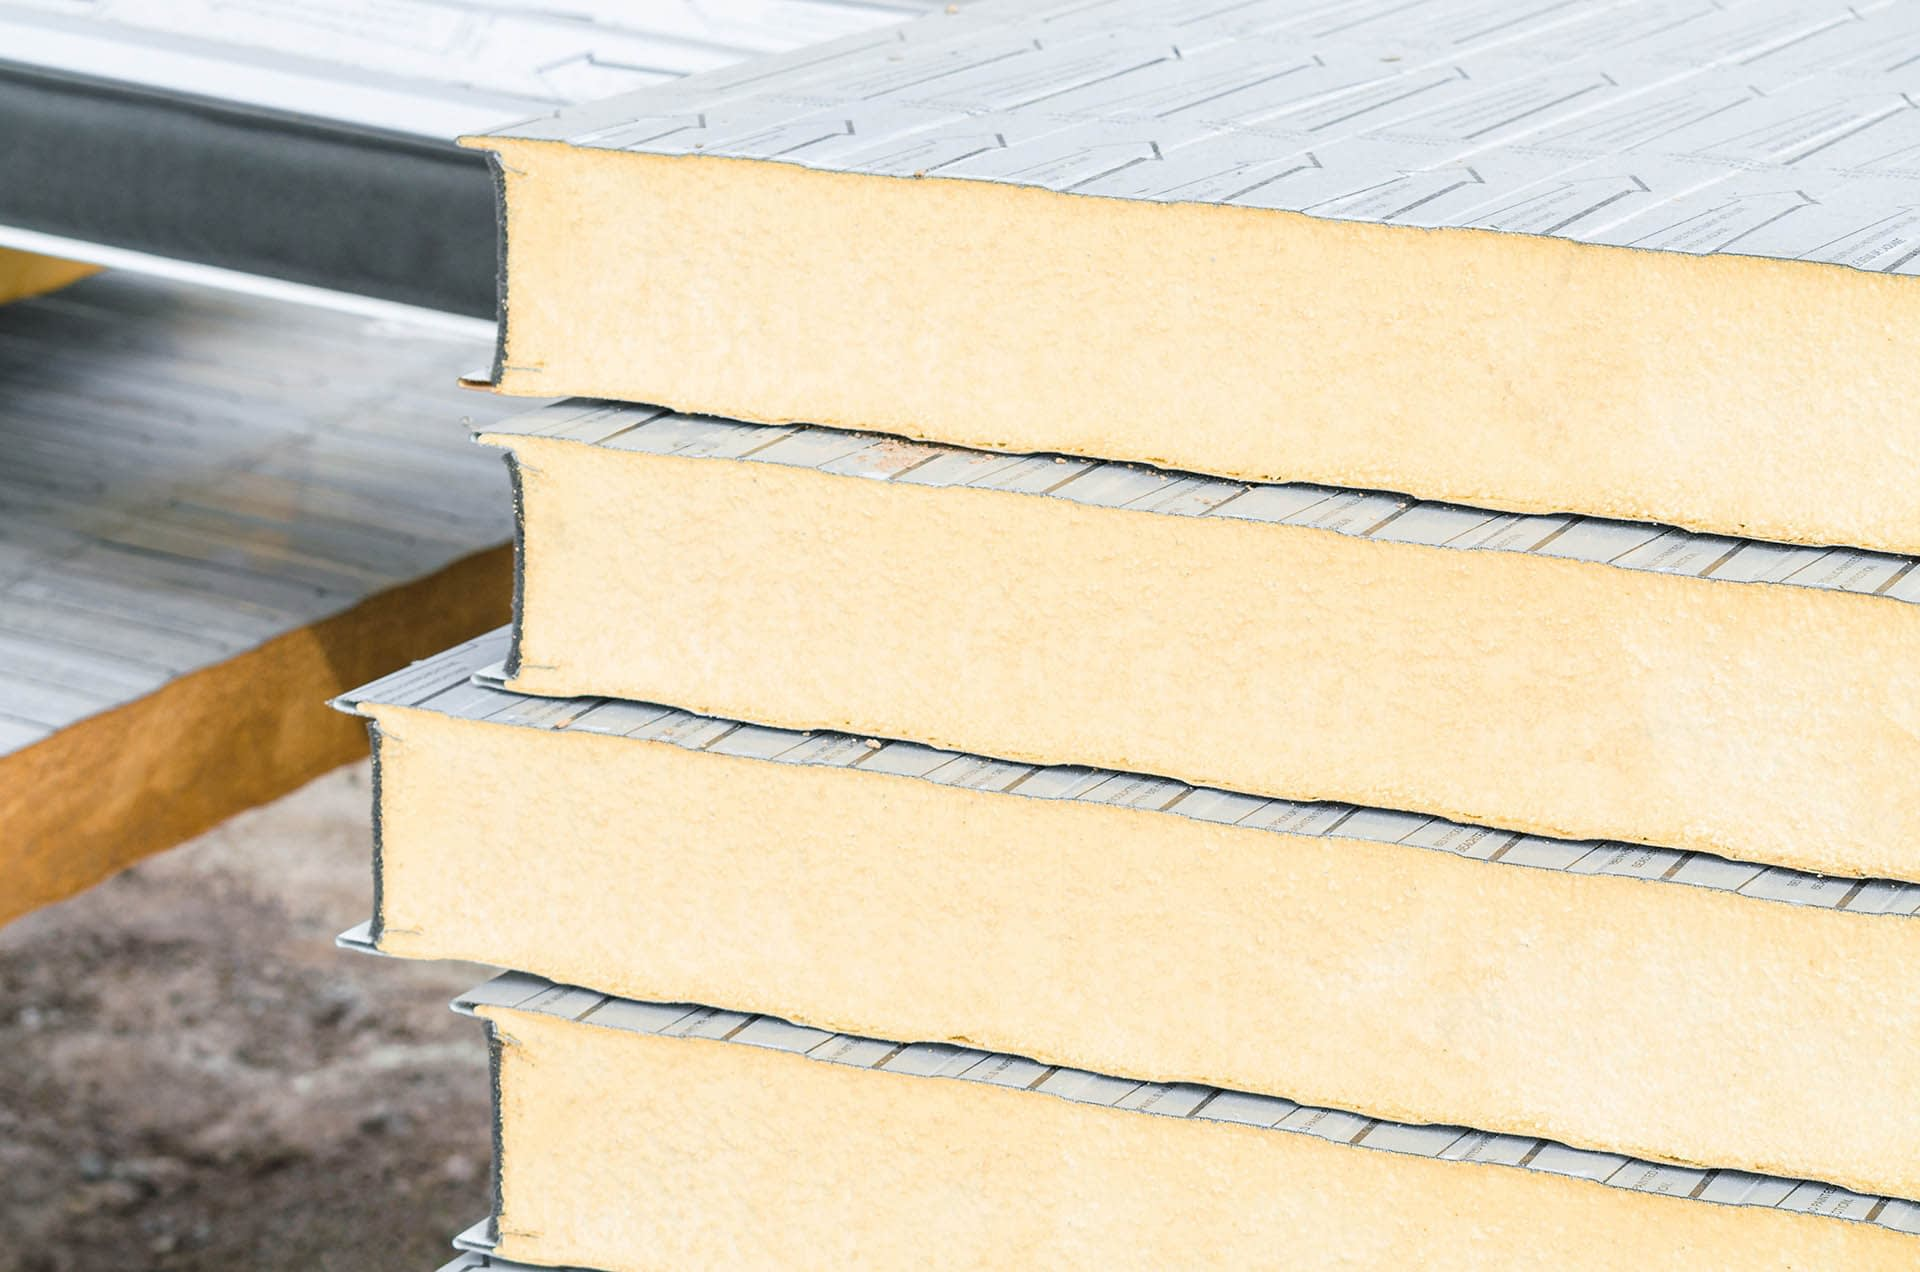 Insulation board blocks for thermal insulation - building materials